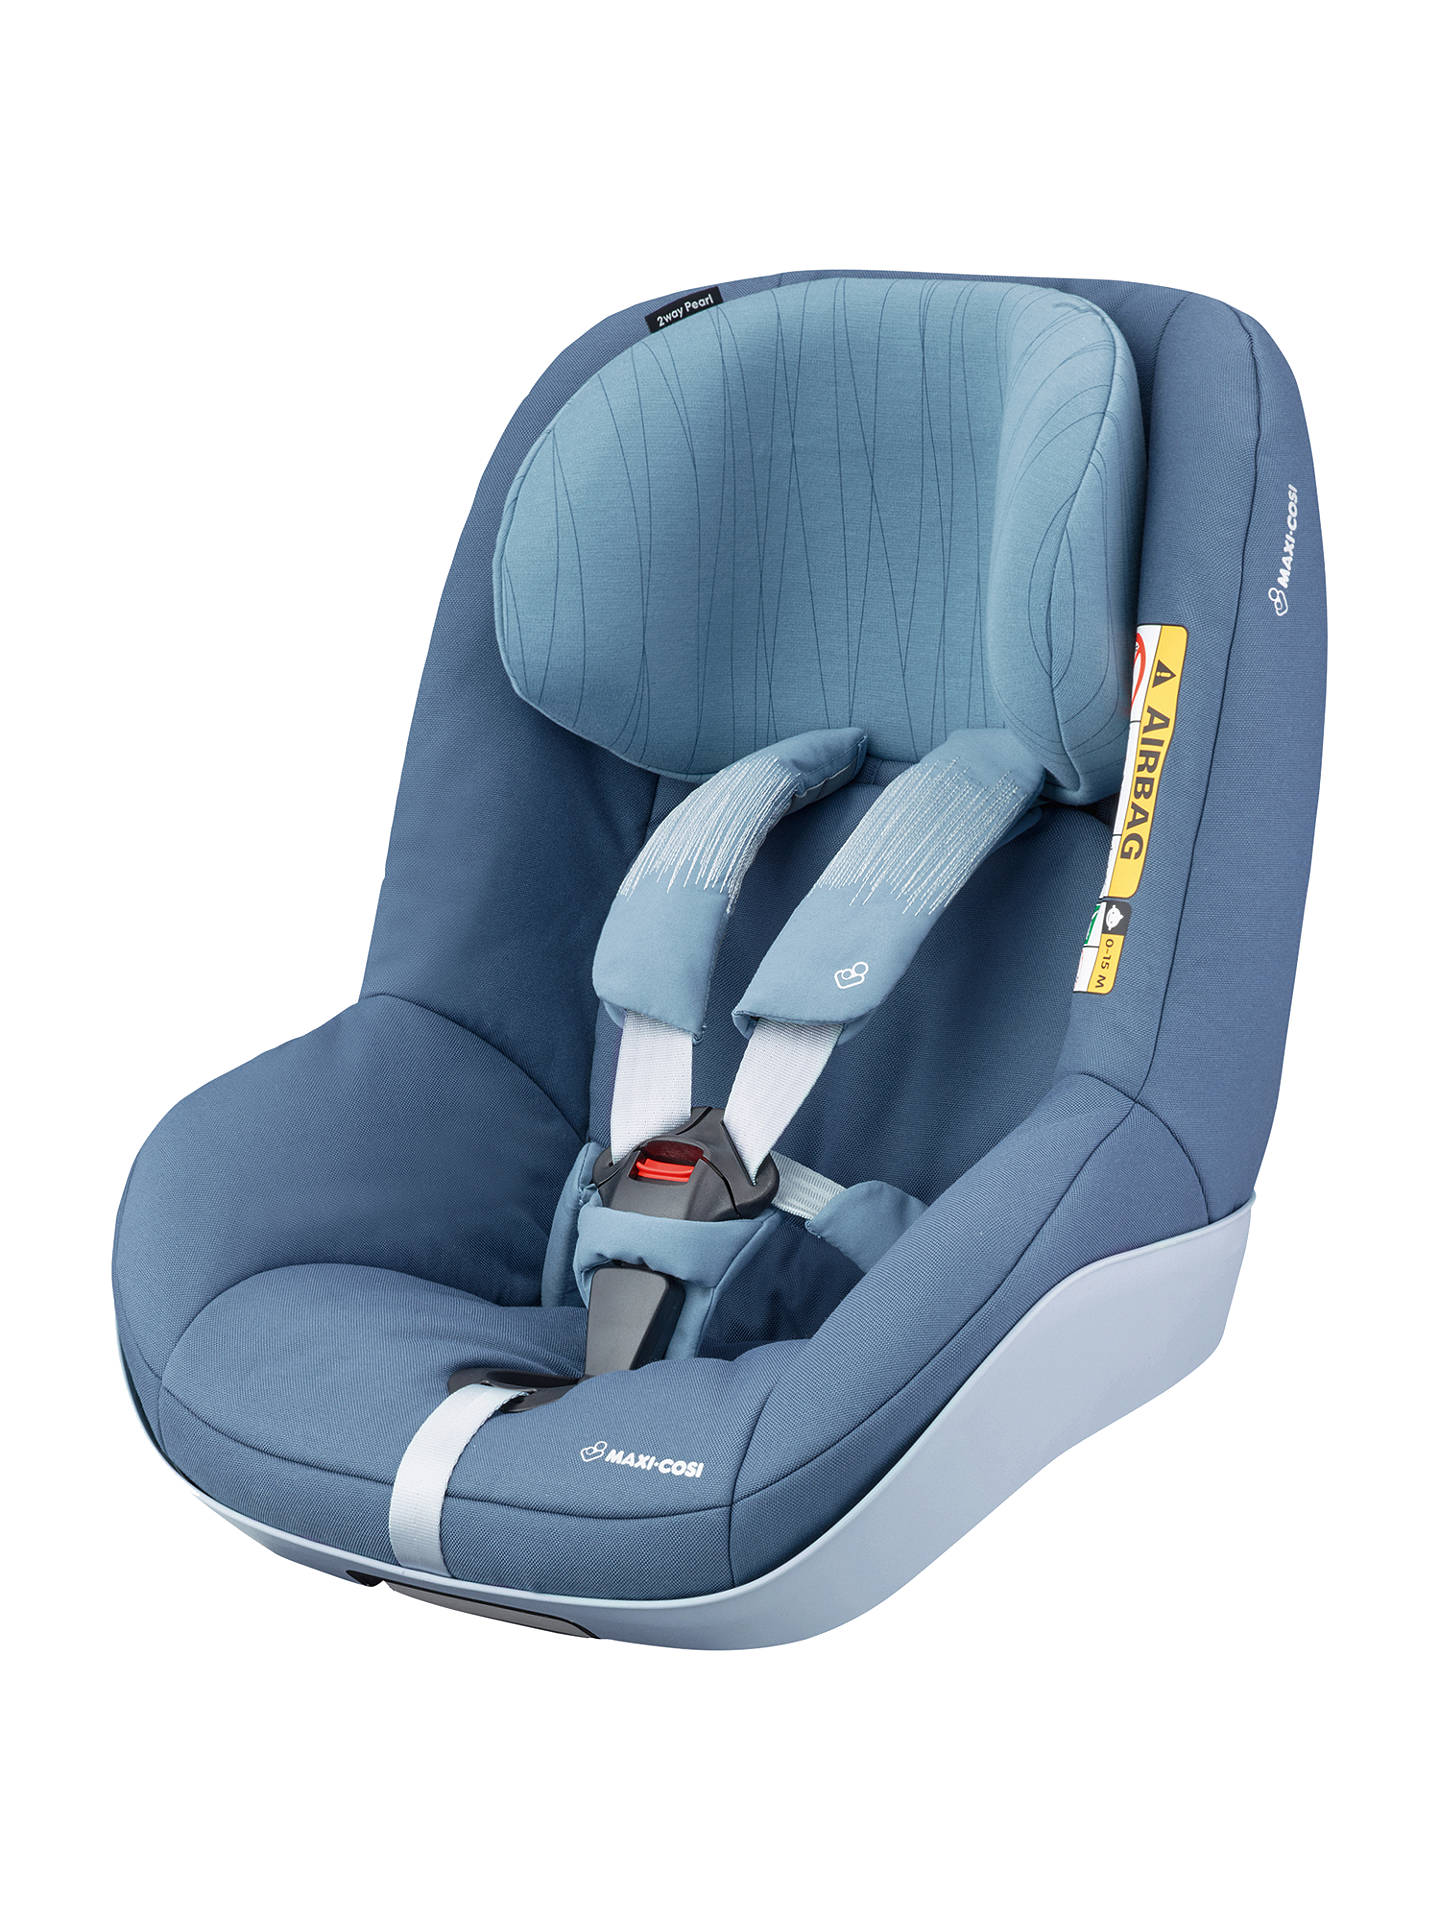 maxi cosi 2waypearl i size group 1 car seat frequency blue at john